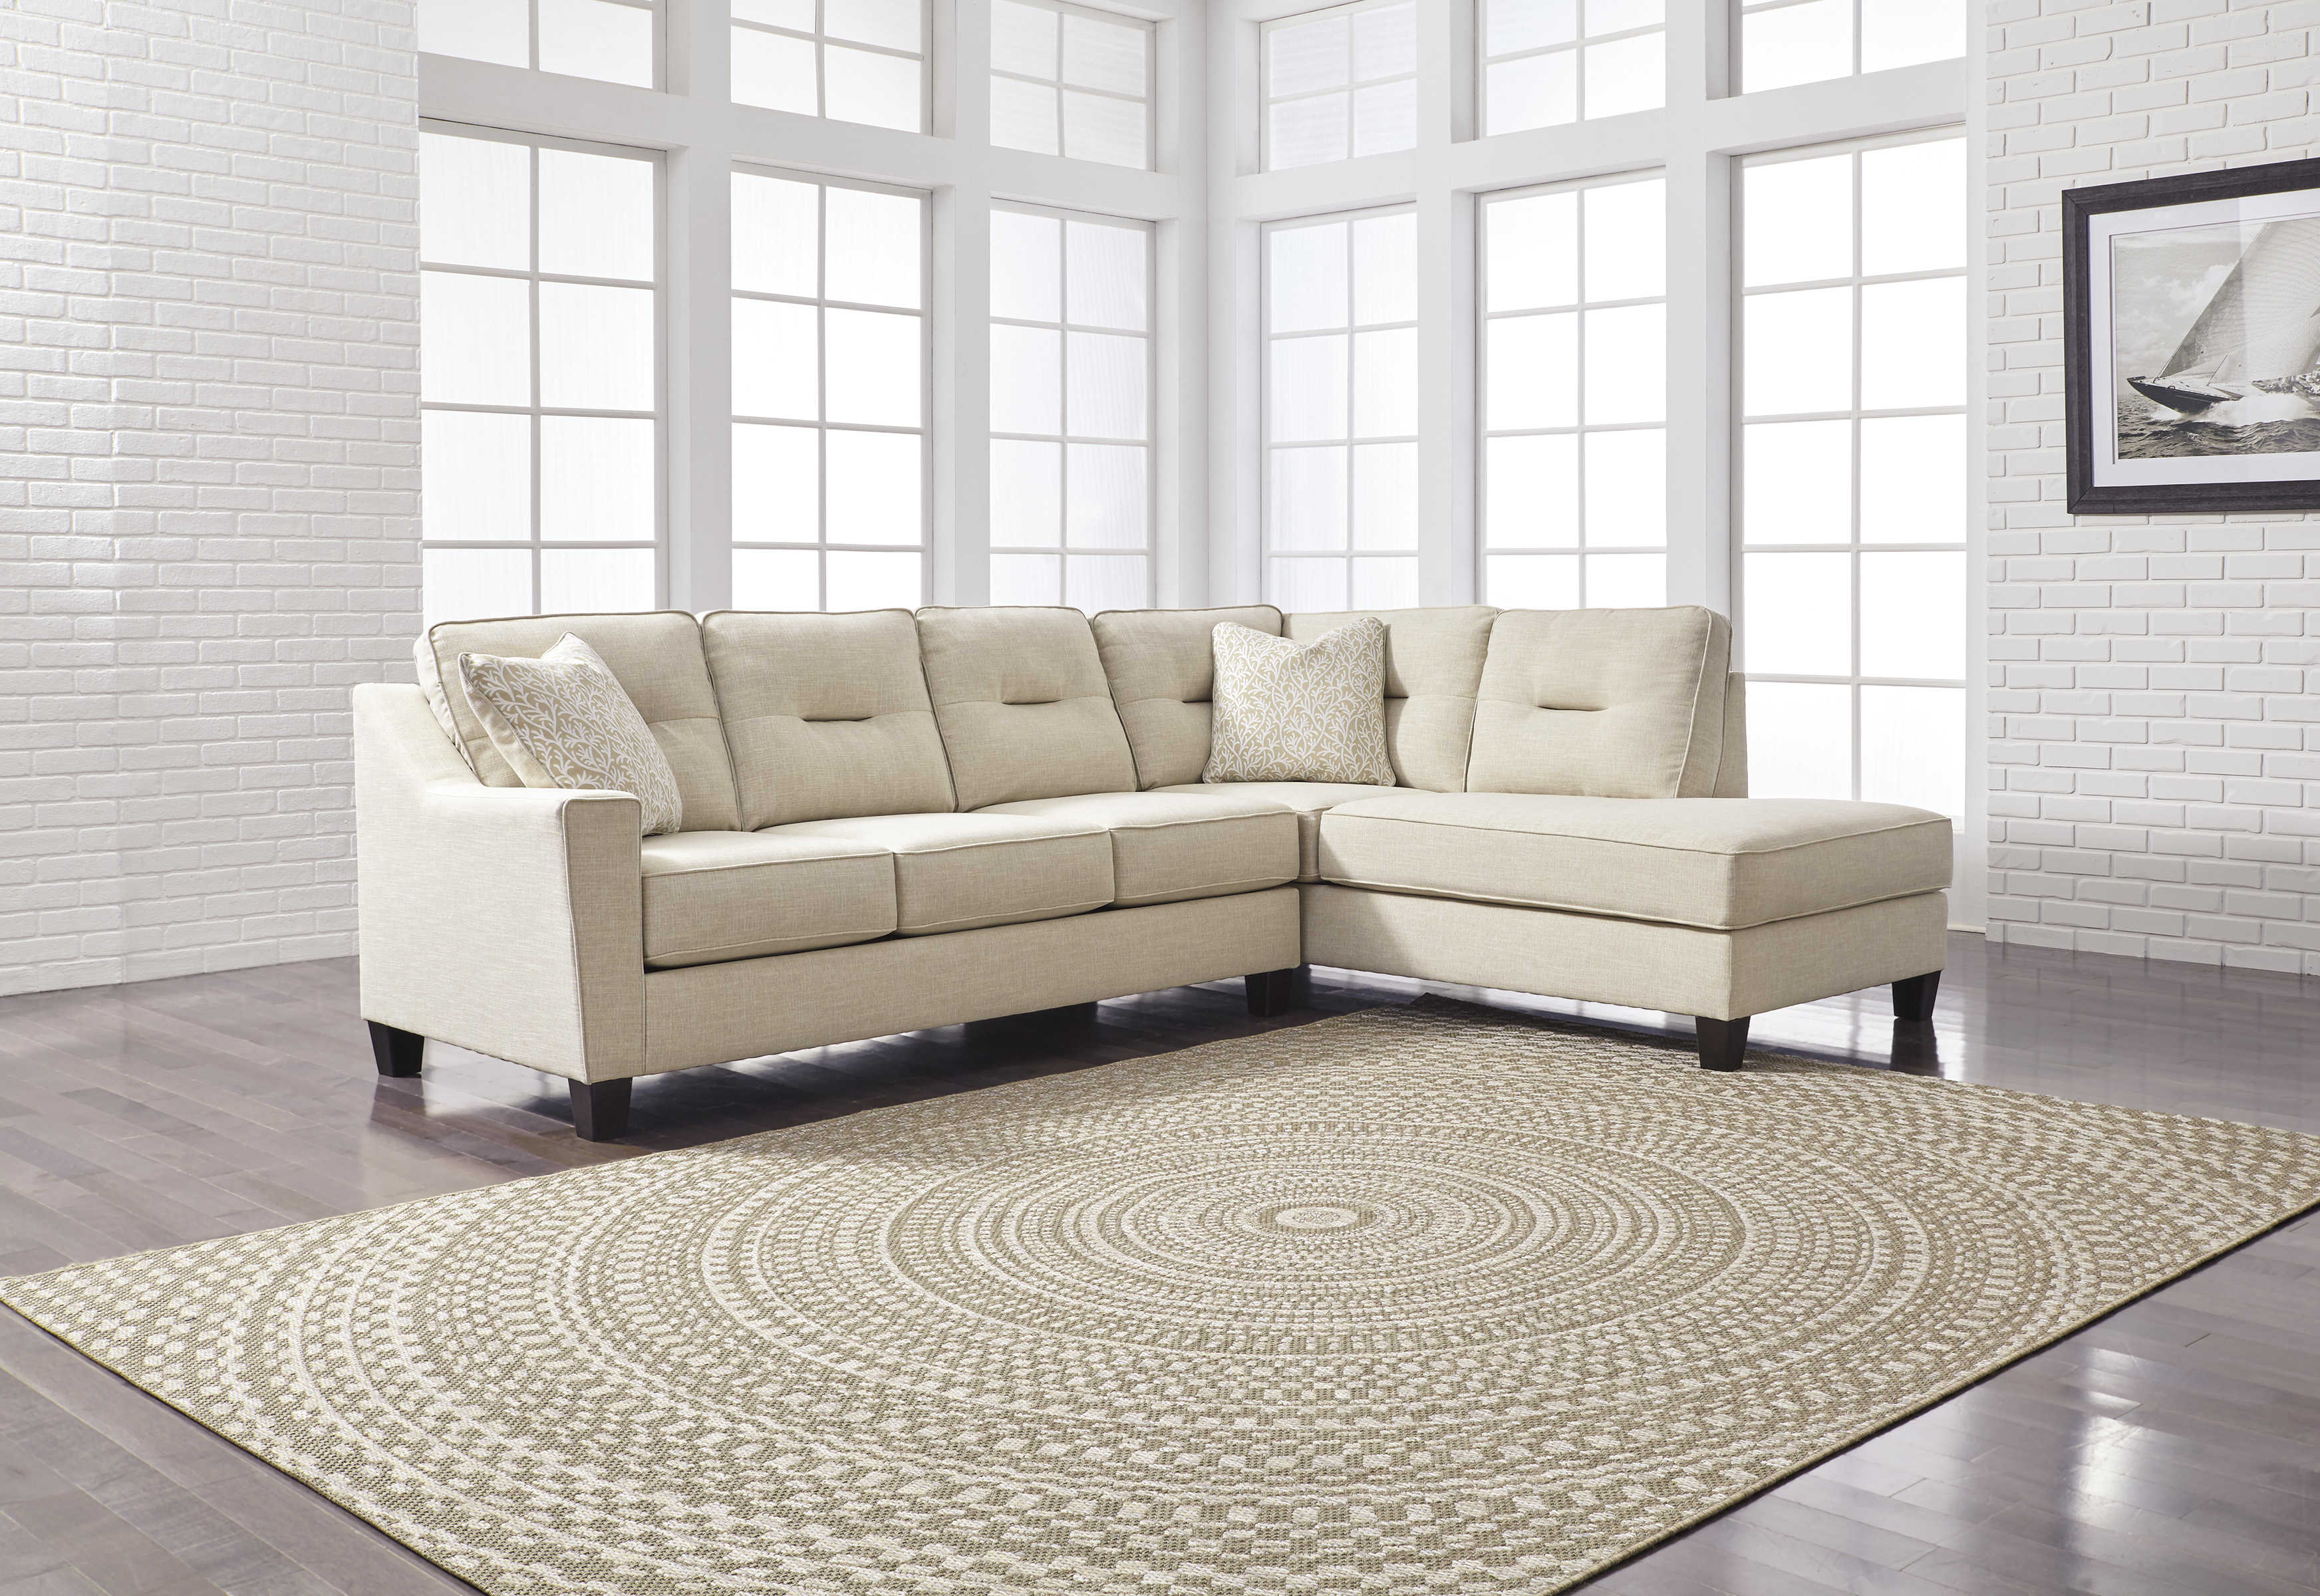 Tremendous Ashley Furniture Kirwin Nuvella Sand Raf Chaise Sectional Home Interior And Landscaping Palasignezvosmurscom